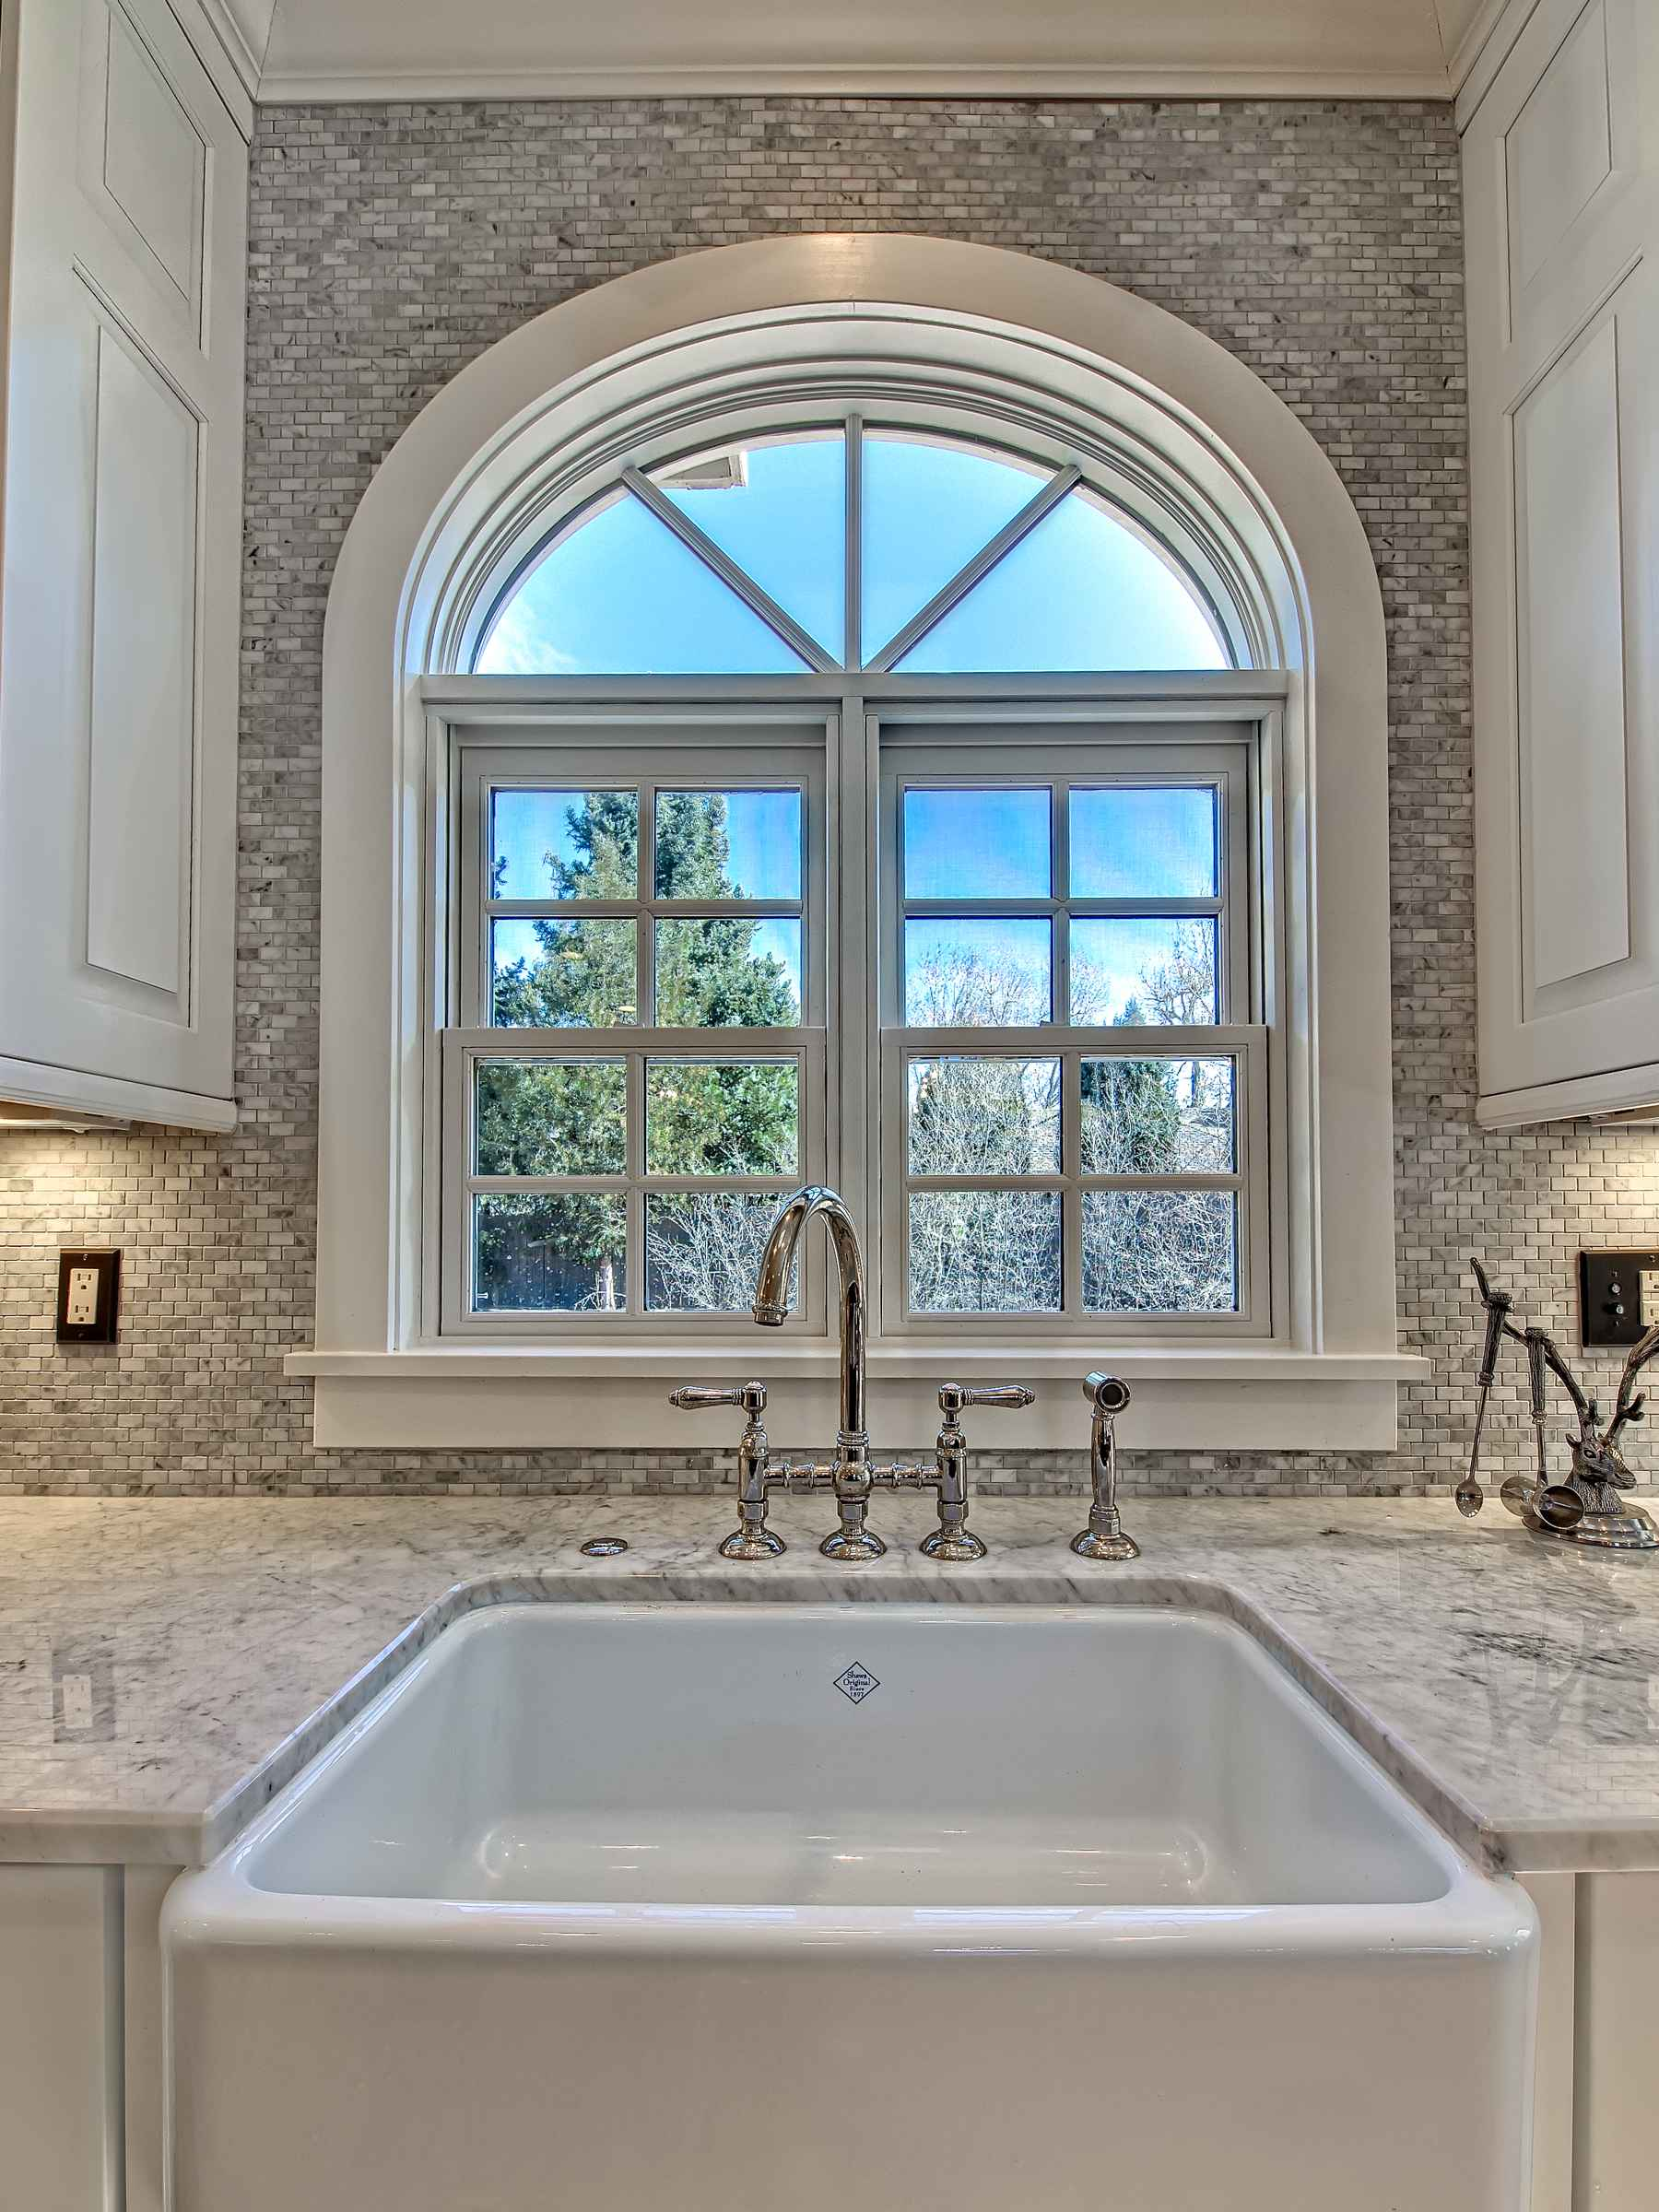 southern charm — sanctuary kitchen and bath design-2.jpg